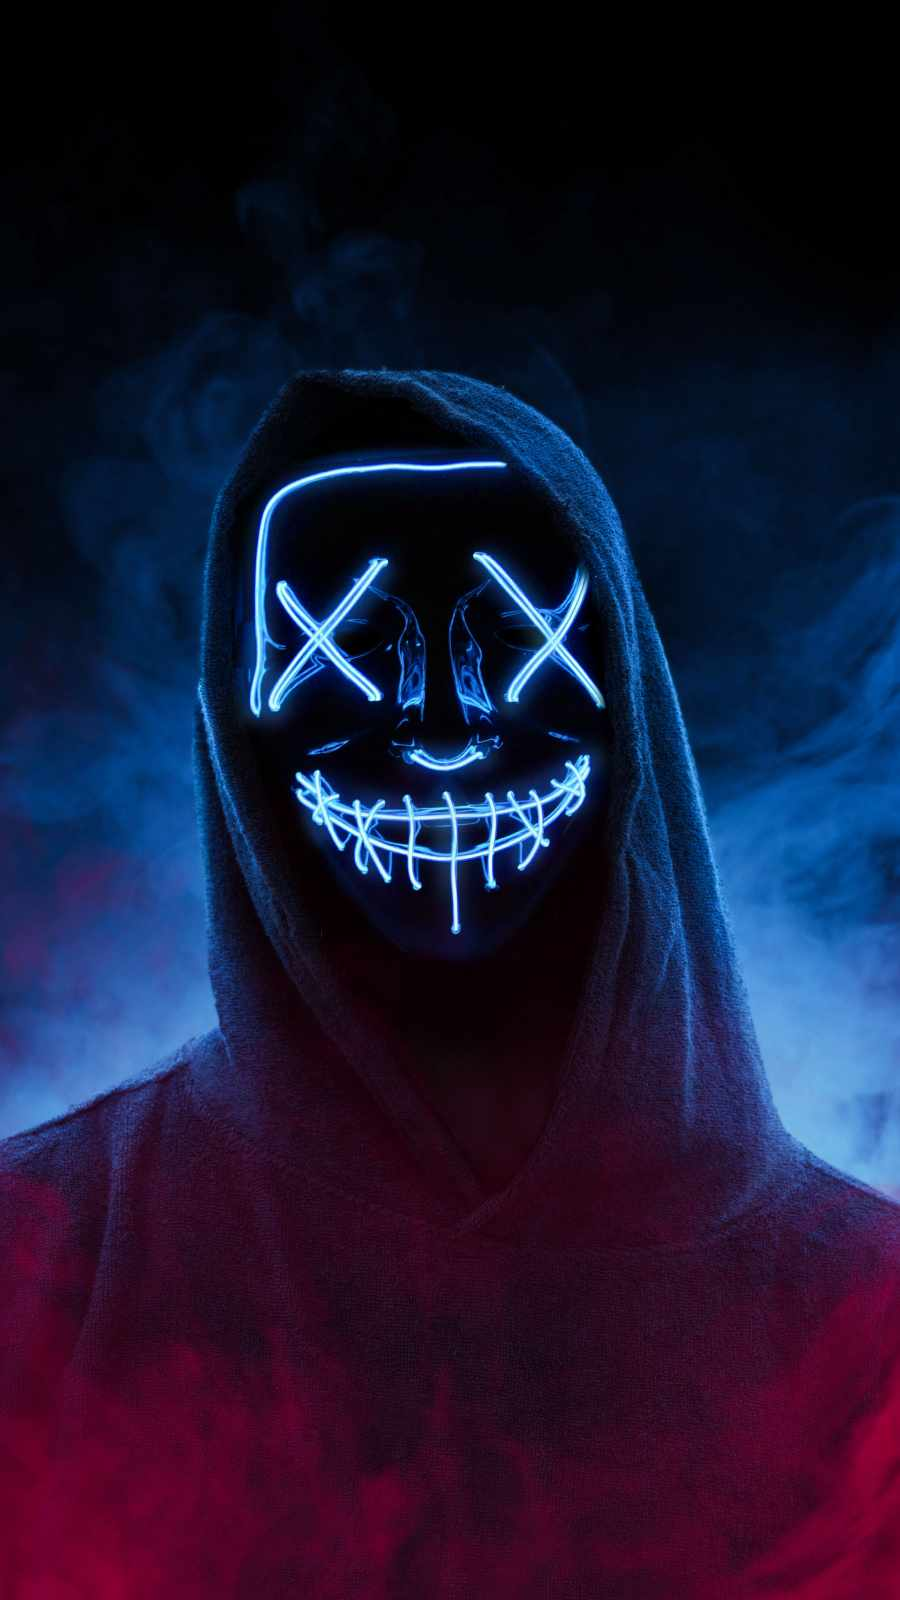 Neon Stitched Mask Hoodie Guy